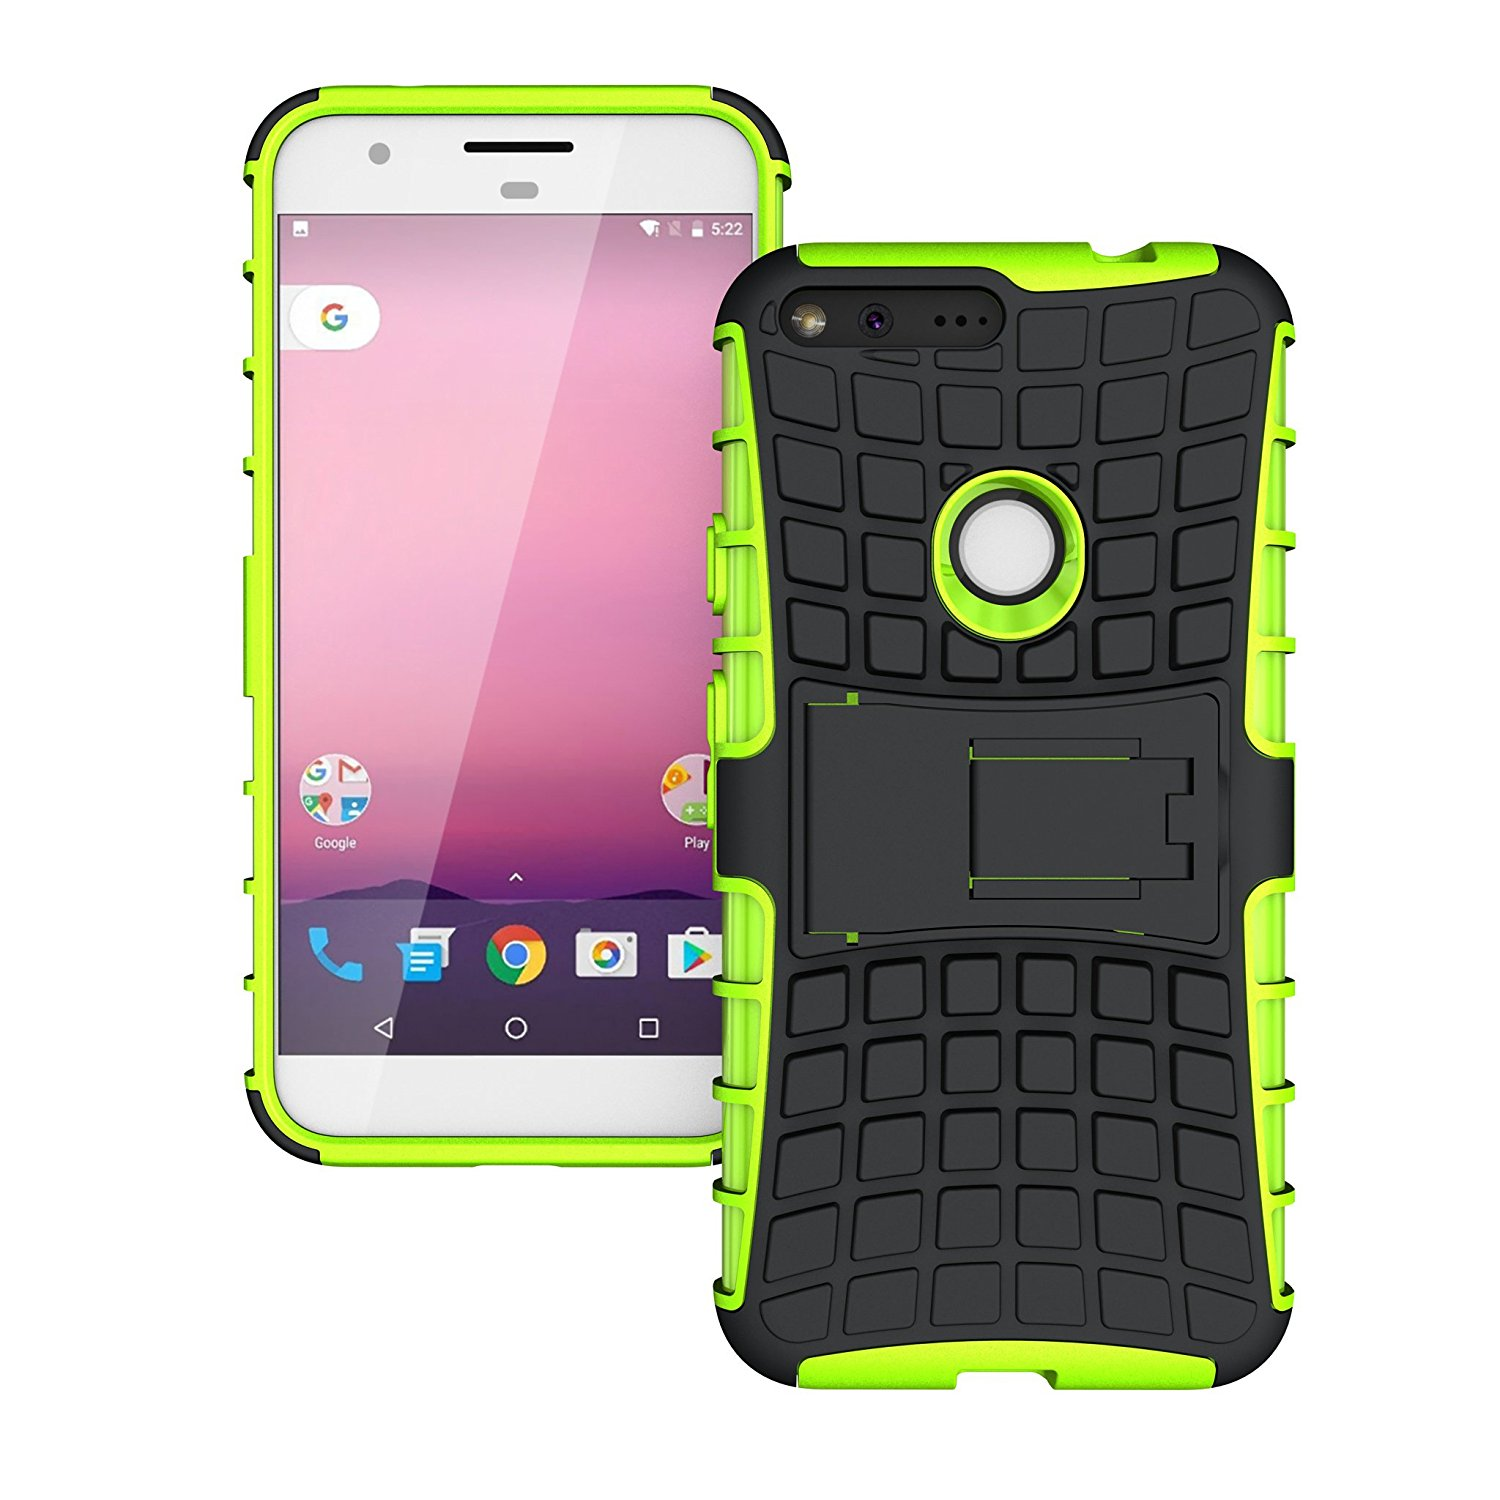 TCD Google PIXEL Hybrid Grenade Armor Protective Case with Kickstand